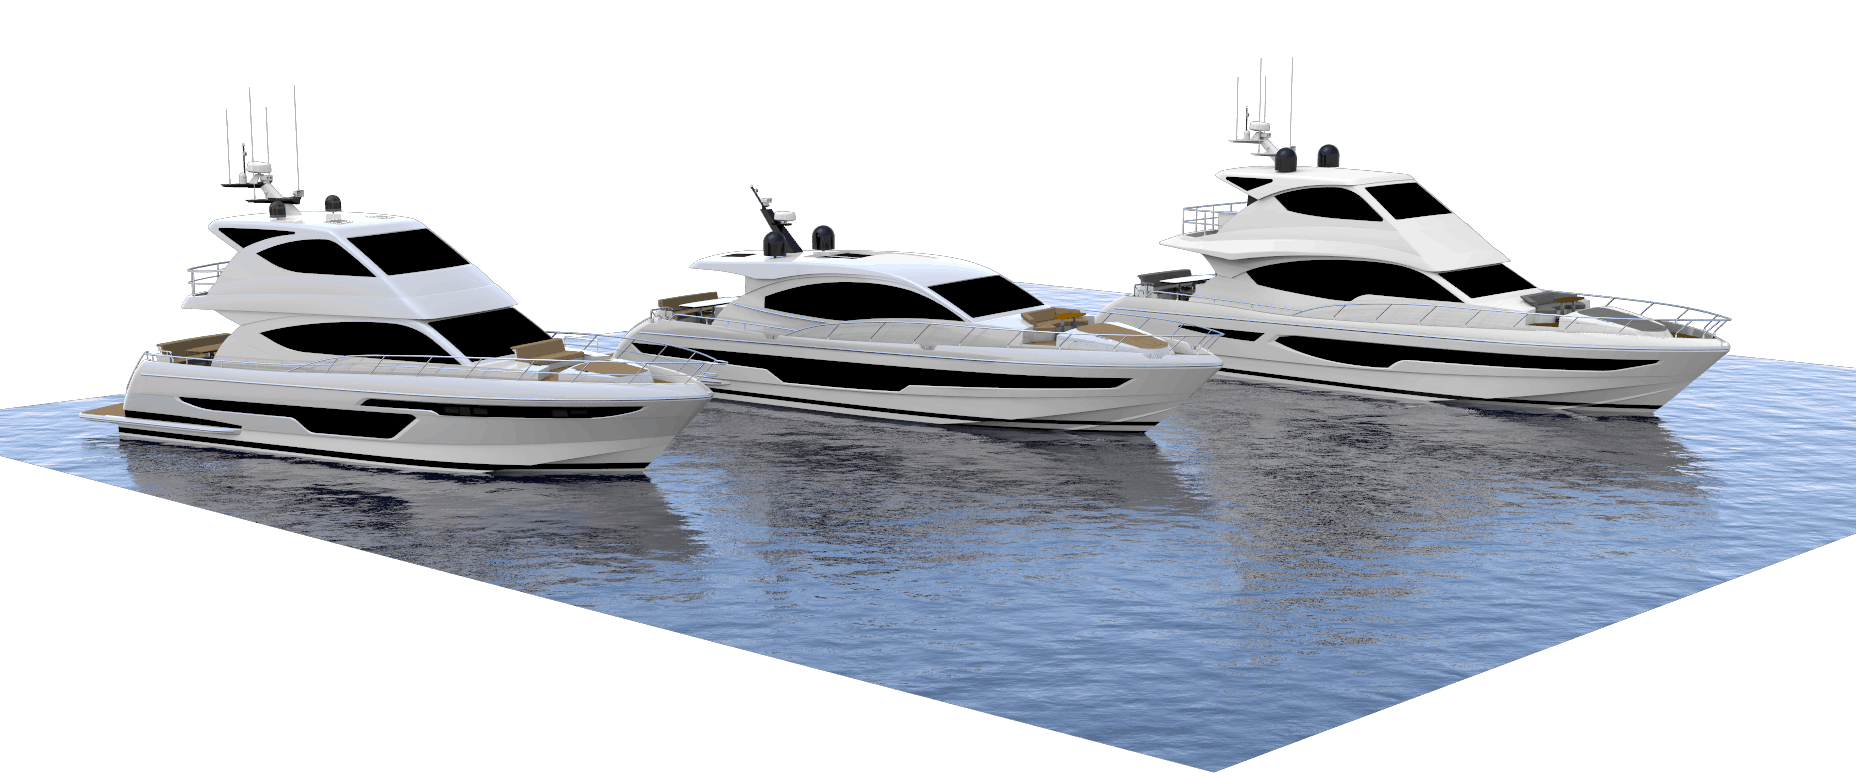 computed renders of newly designed Whitehaven Flybridge 600 and Flybridge 7000 models